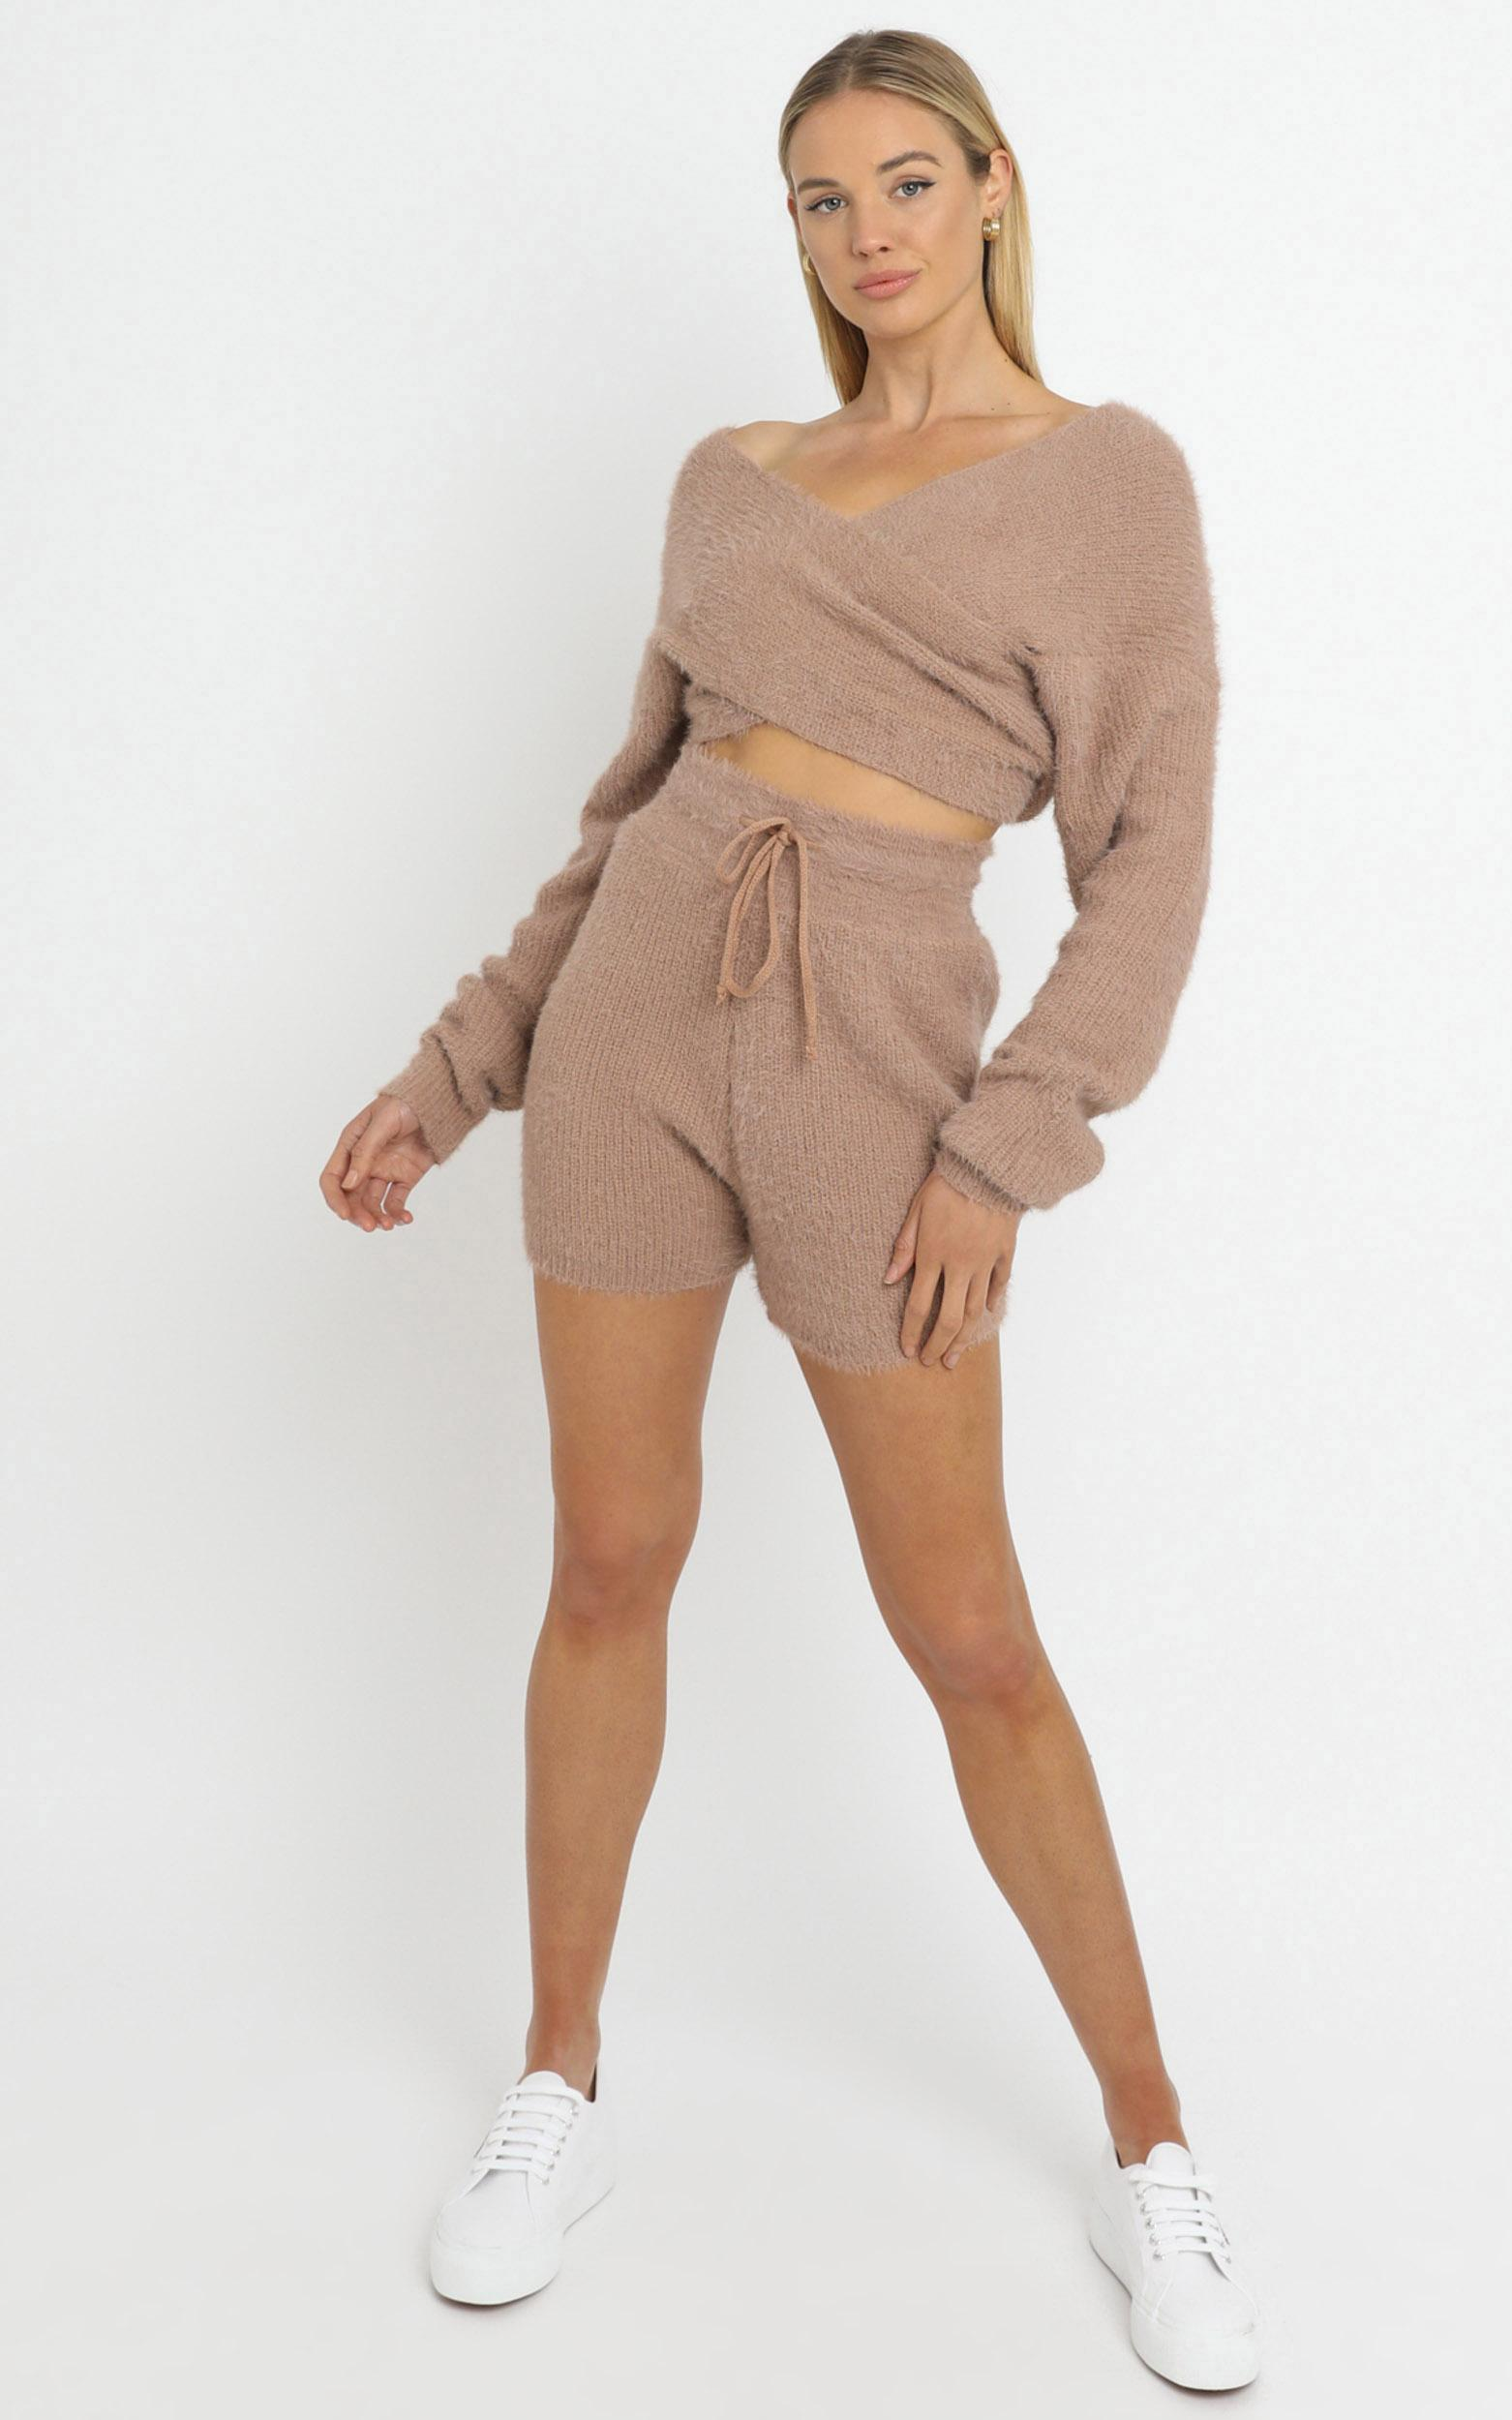 Cameron Two Piece Set in Mocha - M/L, CRE1, hi-res image number null